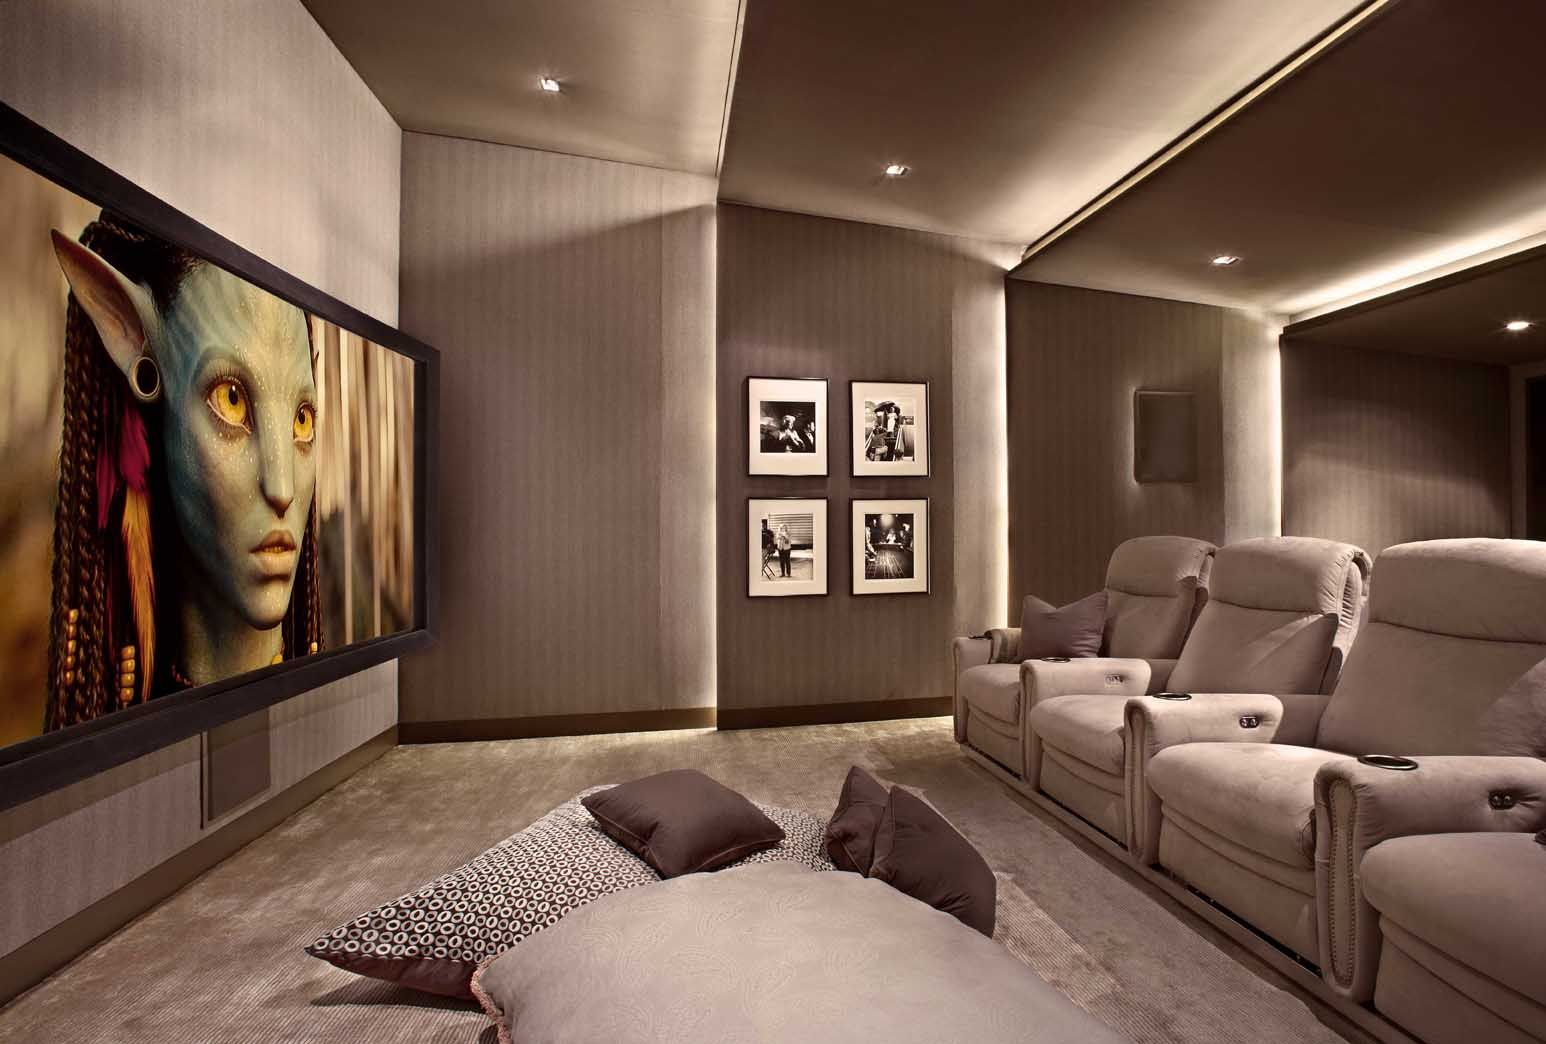 Lower class living room - Lower Storey Cinema Room Hometheater Projector Home Theatre Surround Sound Plasma Tv